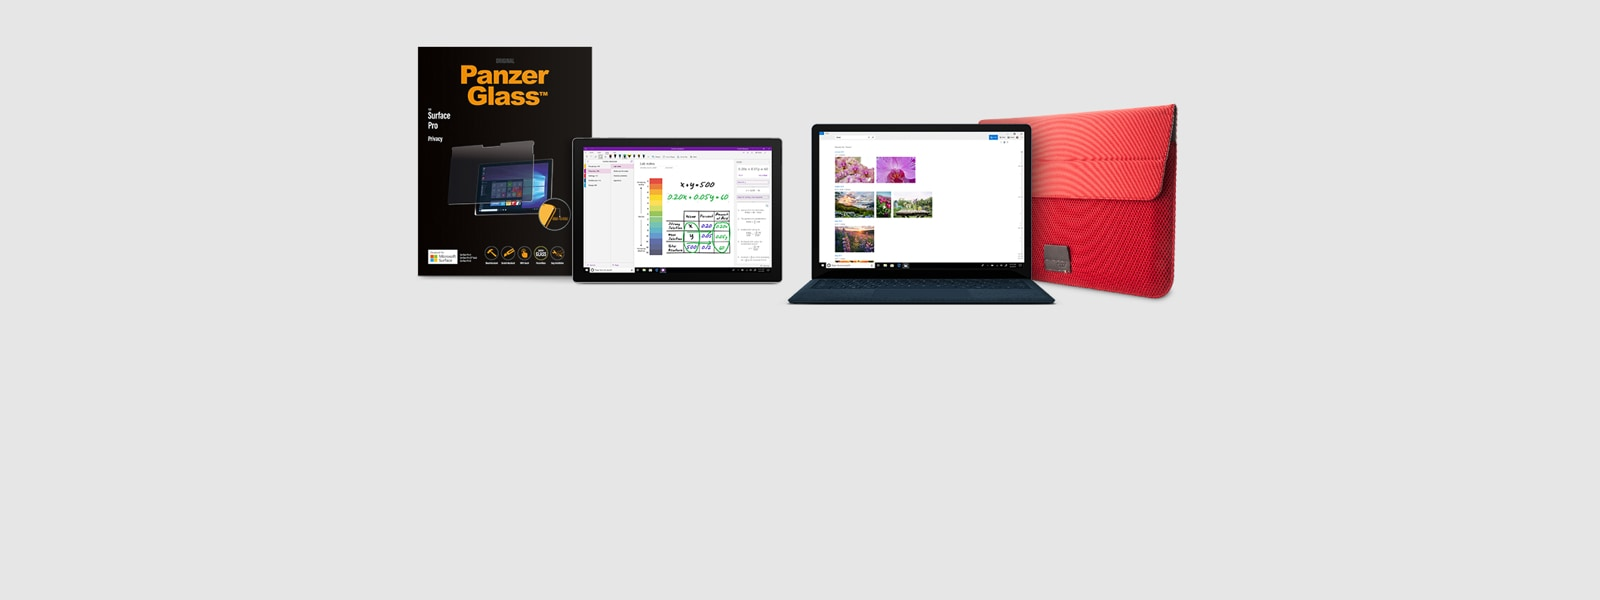 Surface Pro 7 and PanzerGlass, Surface Laptop 3 and Cozistyle ARIA 15 sleeve